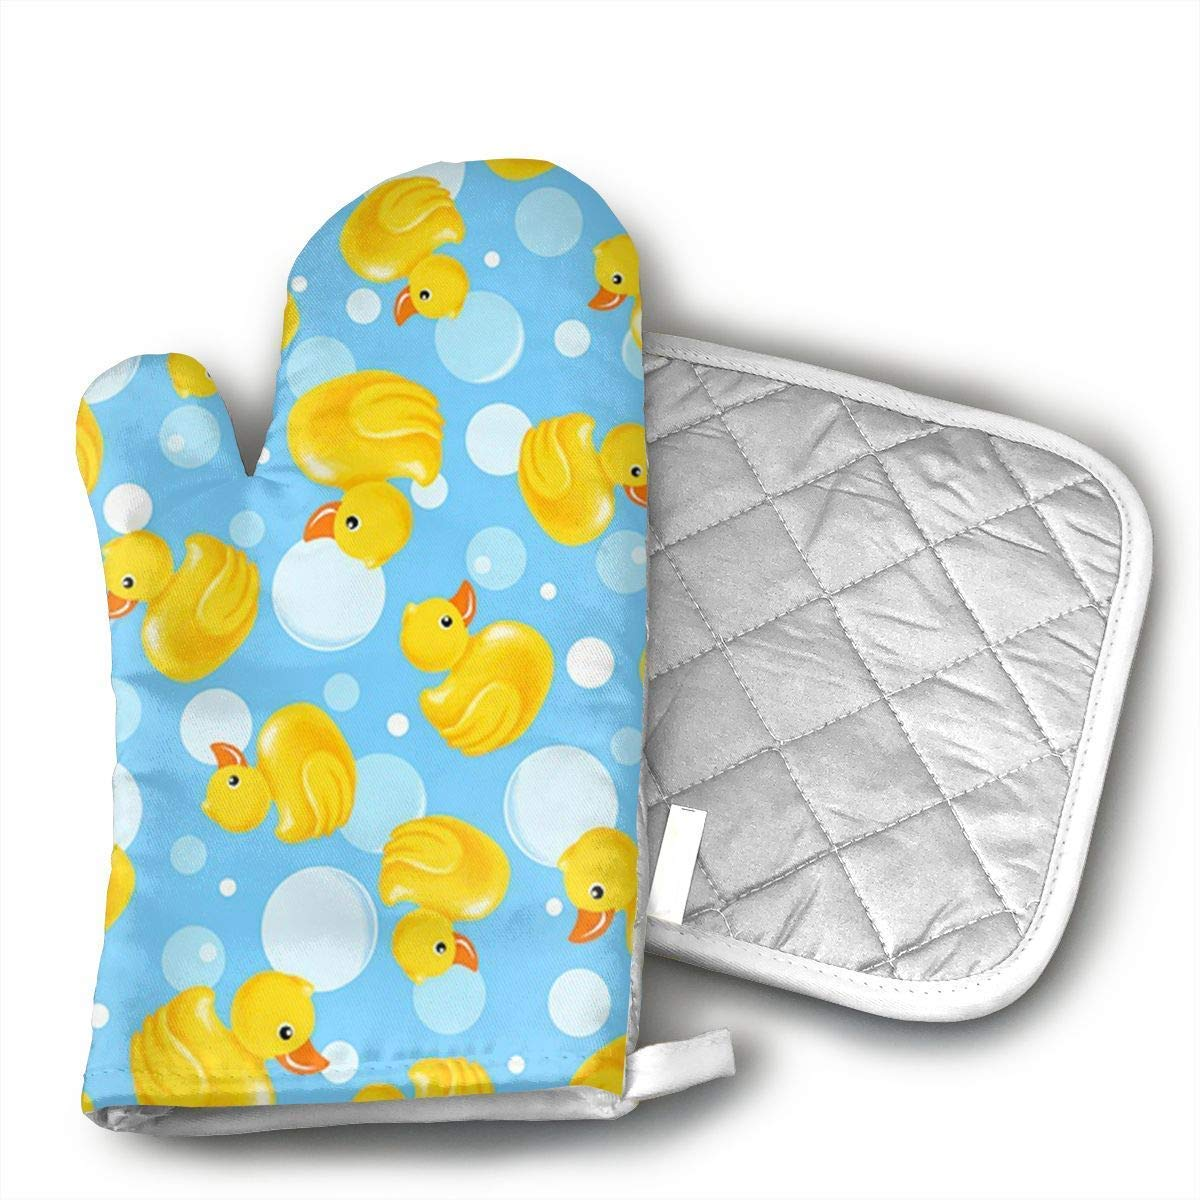 NoveltyGloves Yellow Duck Oven Mitts,Professional Heat Resistant Microwave BBQ Oven Insulation Thickening Cotton Gloves Baking Pot Mitts Soft Inner Lining Kitchen Cooking